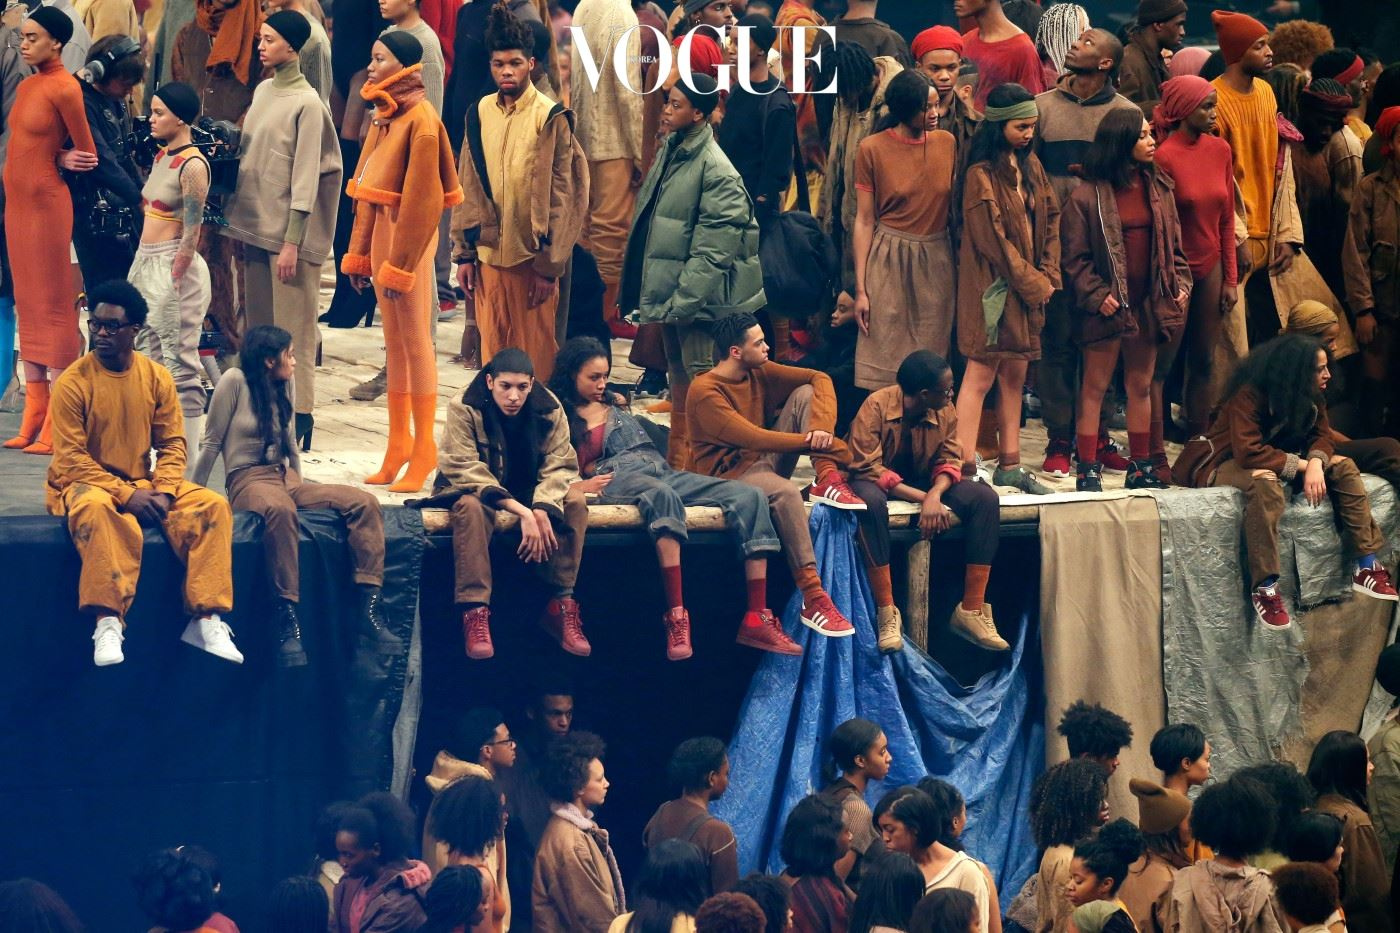 NEW YORK, NY - FEBRUARY 11:  Models pose during Kanye West Yeezy Season 3 on February 11, 2016 in New York City.  (Photo by JP Yim/Getty Images for Yeezy Season 3)